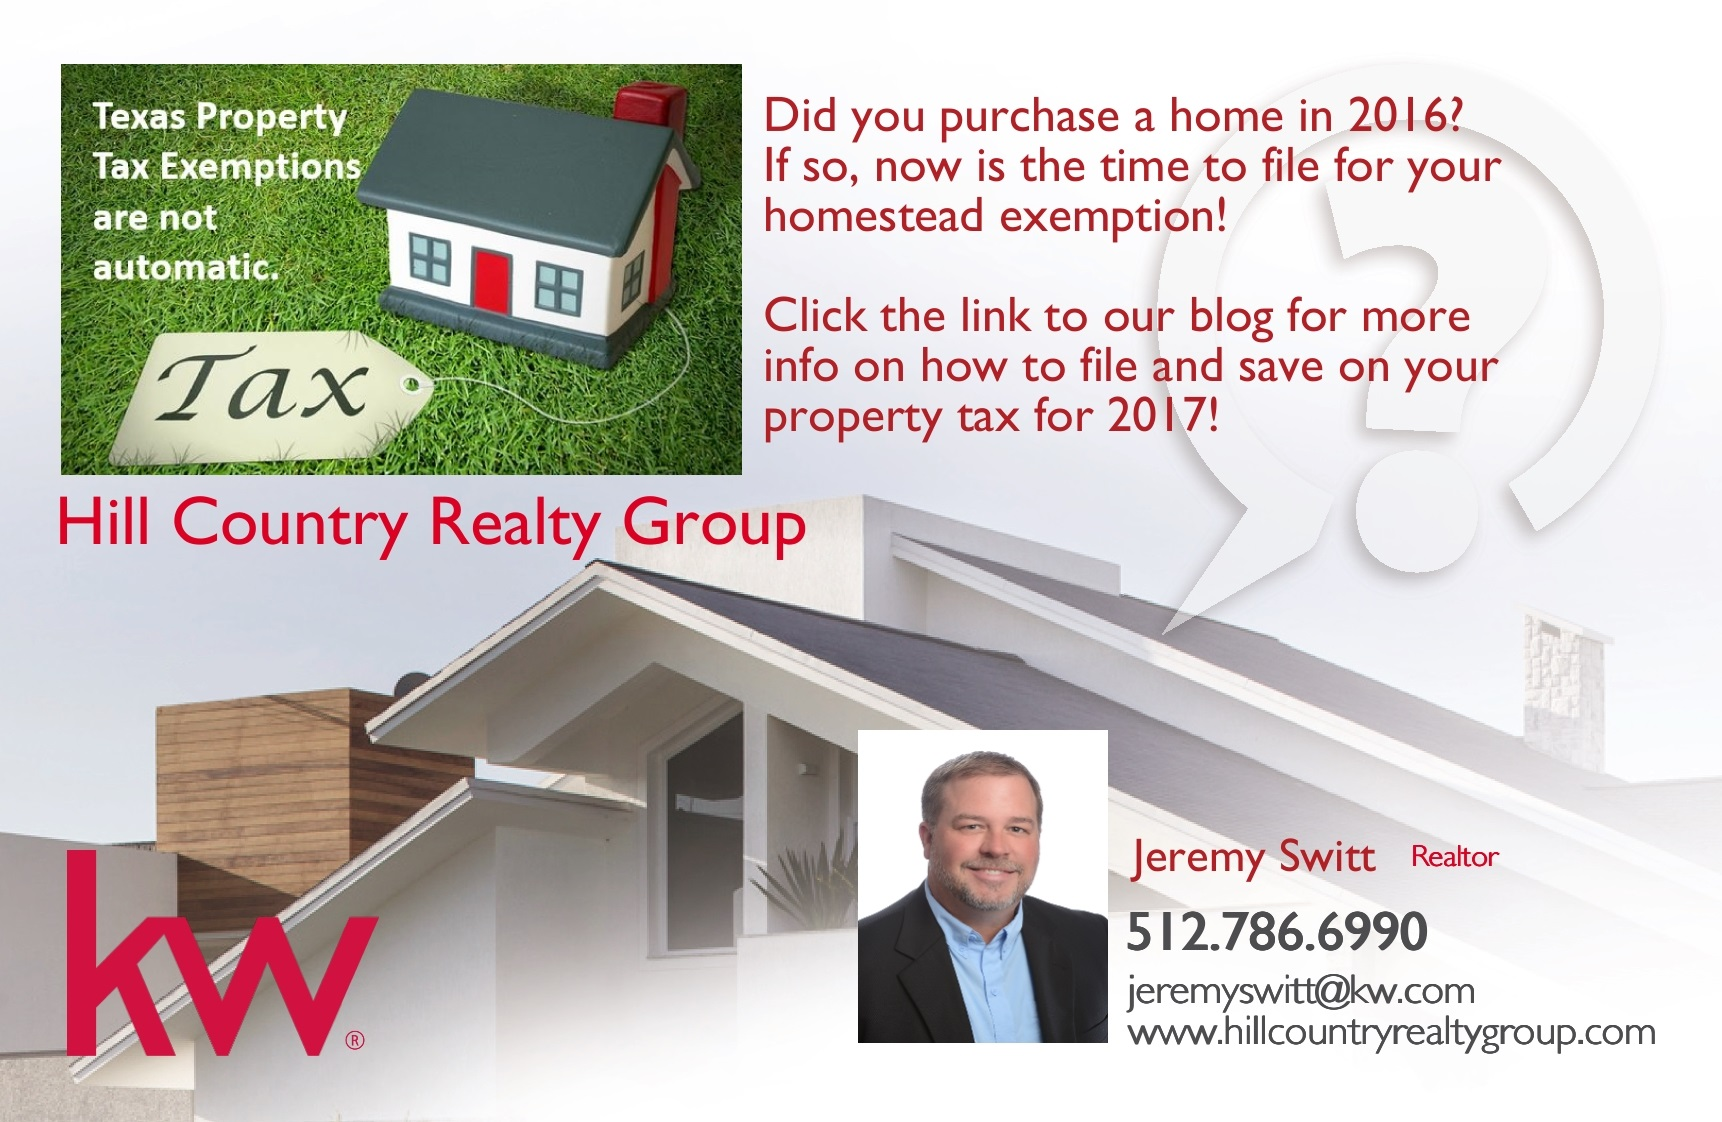 File for your Homestead Exemption now to save!